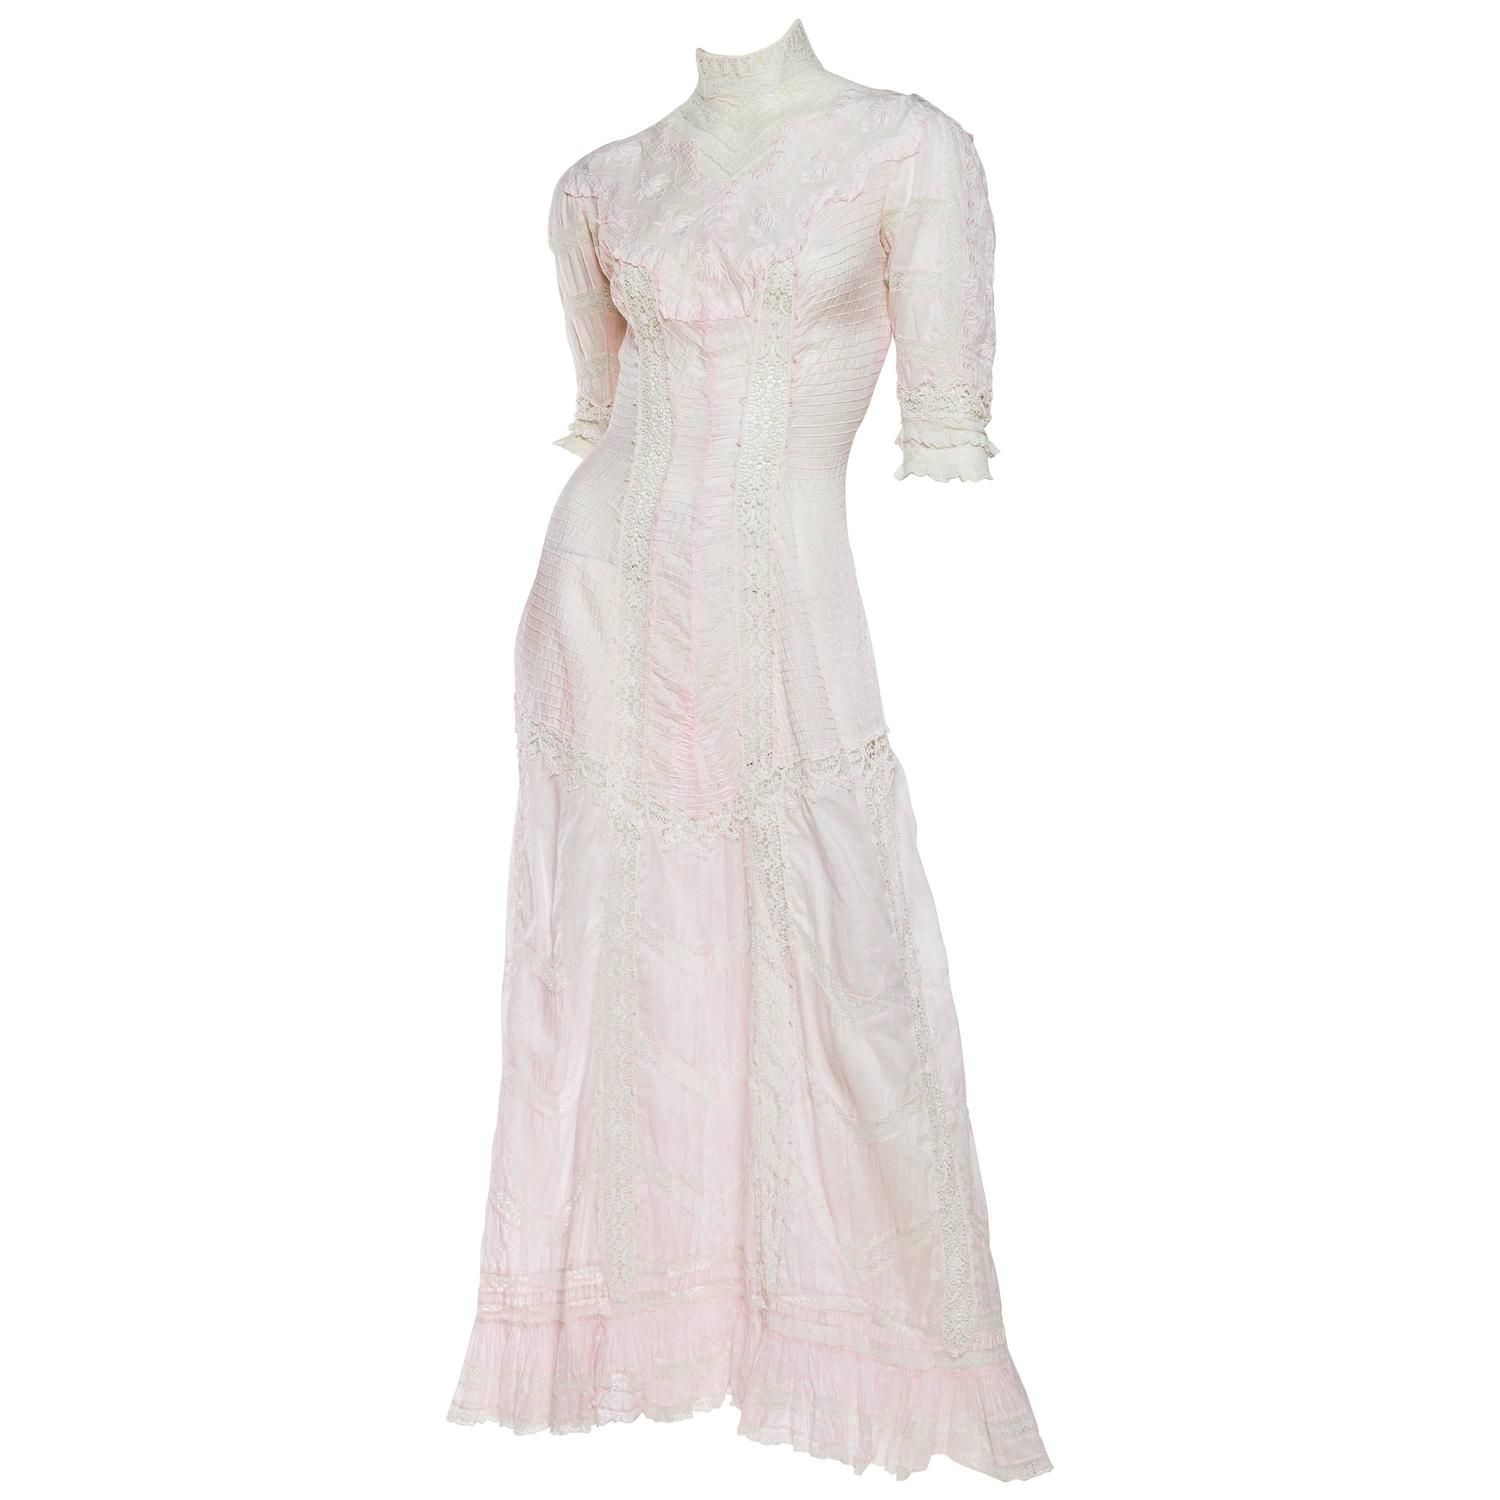 Beautiful And Very Rare Swan Neck Victorian Tea Dress Tea Dress Dresses Tea Length Dresses [ 1500 x 1500 Pixel ]